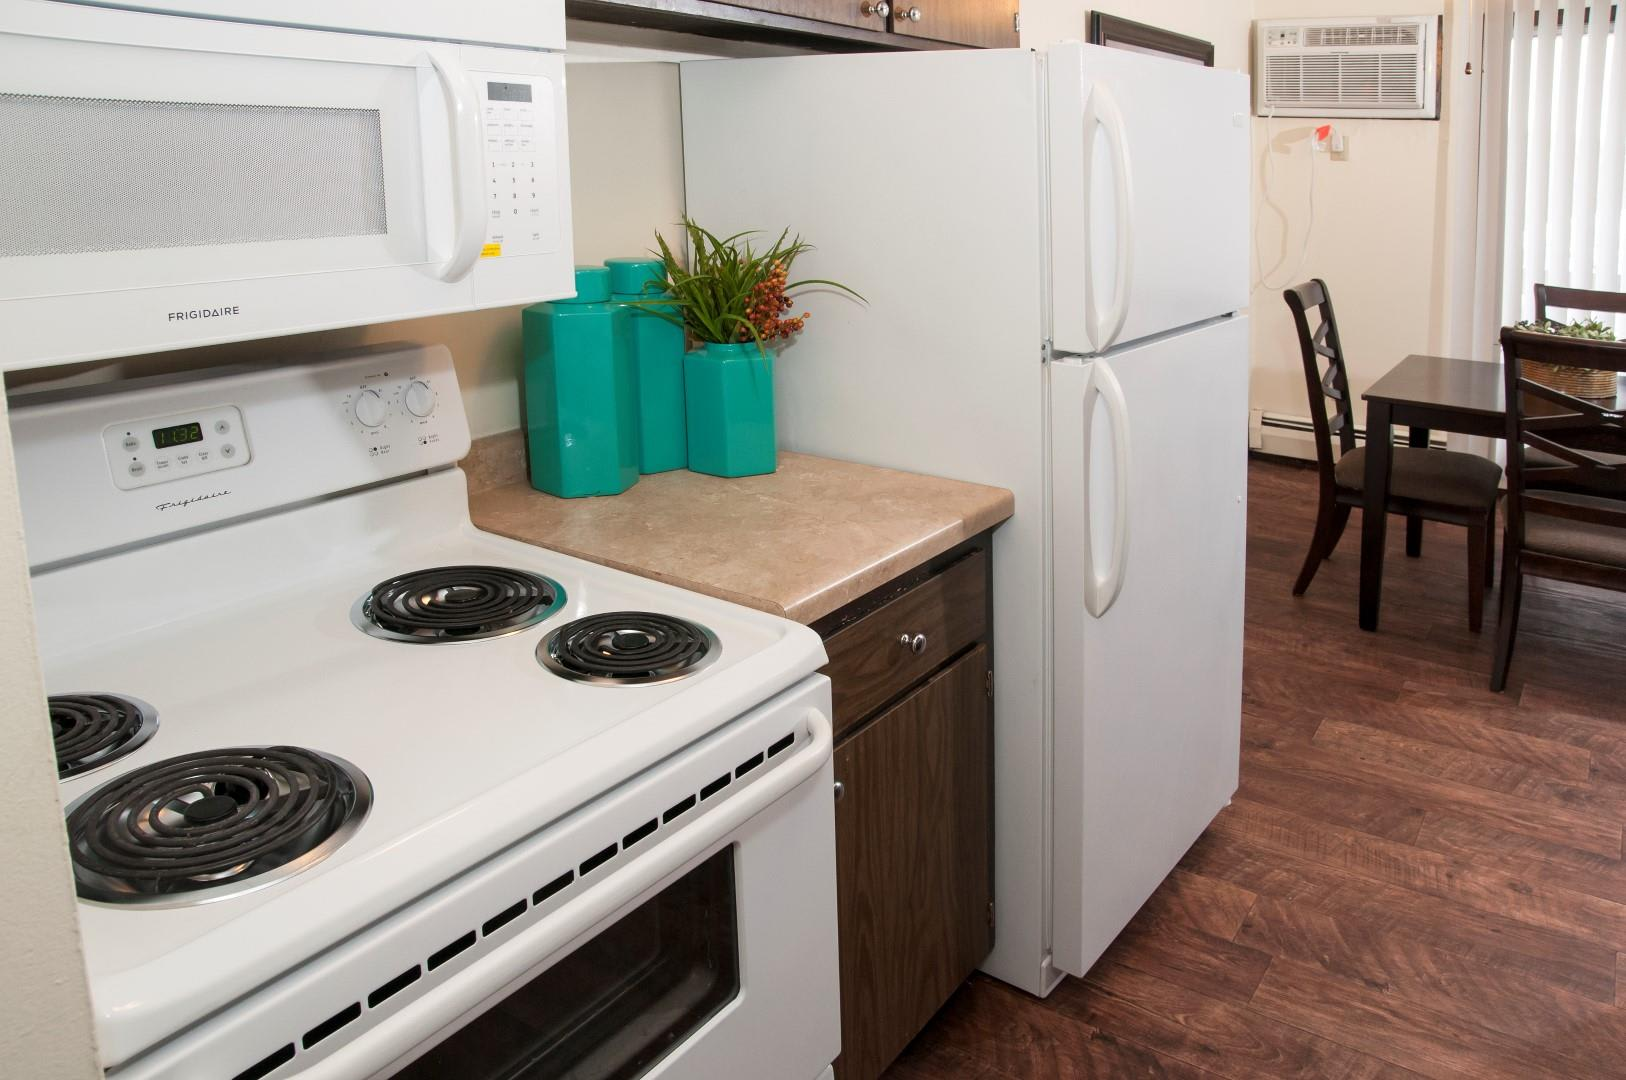 Gas Stove-top, Large Oven and Overhead Microwave Oven in Kitchen of Apartments in Burnsville MN